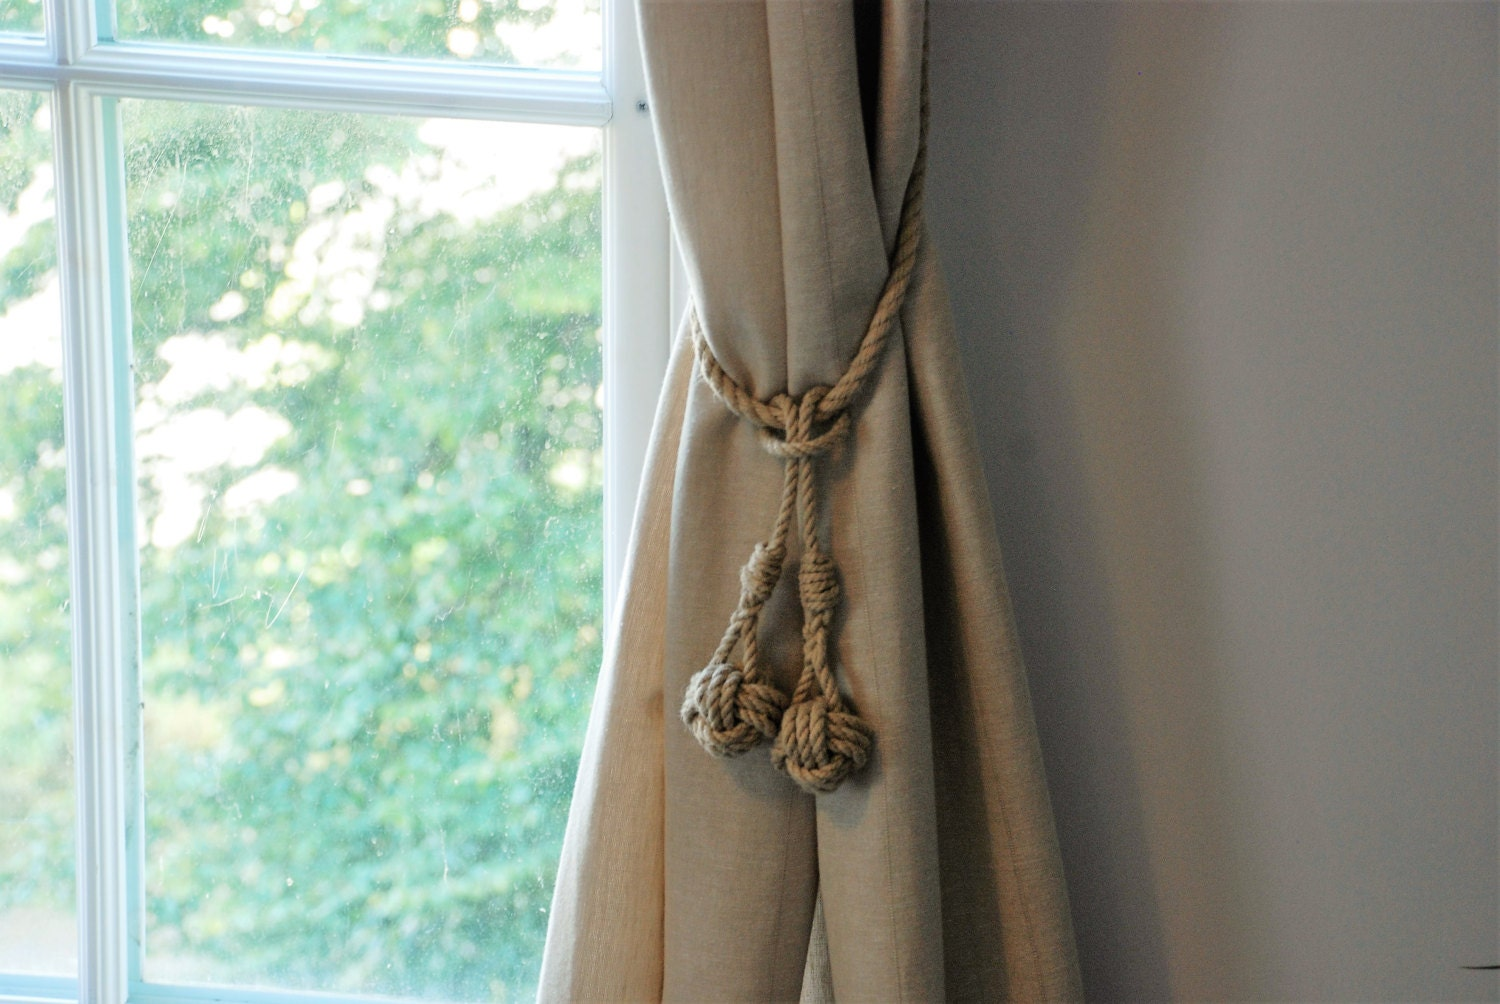 Open window with curtains blowing - Monkey Fist Knot Tassel Hemp Rope Curtain Tie Backs Nautical Ties Shabby Chic Window Treatment Rustic Hold Backs Rope Tie Backs